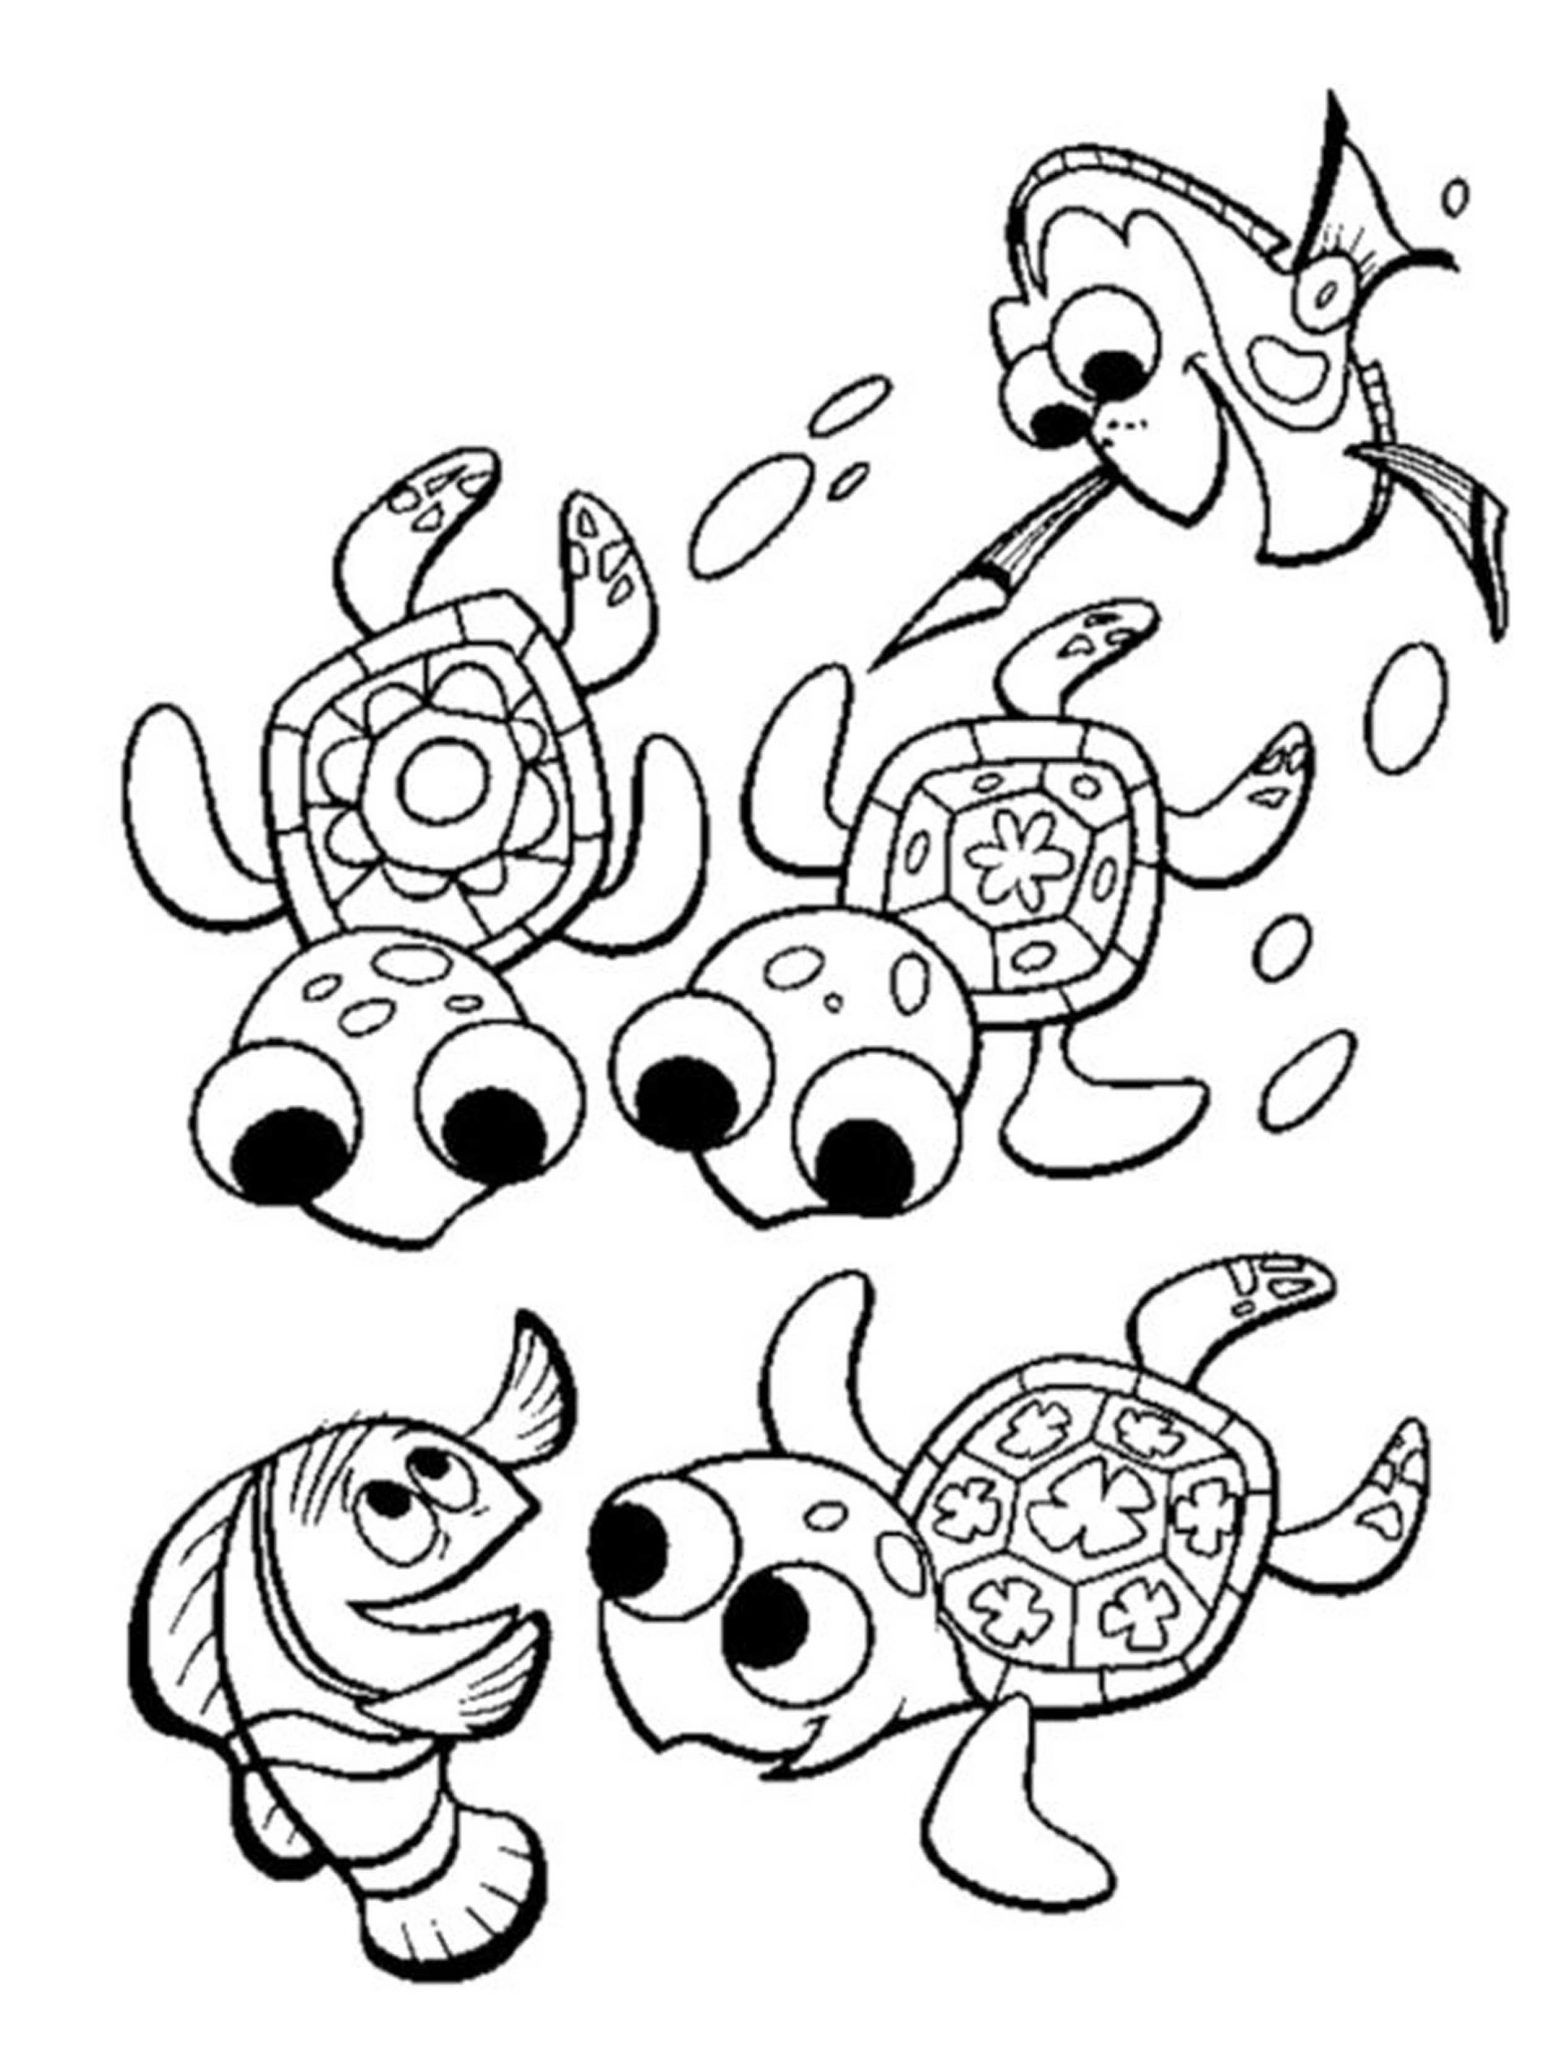 turtle coloring pictures to print printable sea turtle coloring pages for kids cool2bkids to print coloring pictures turtle